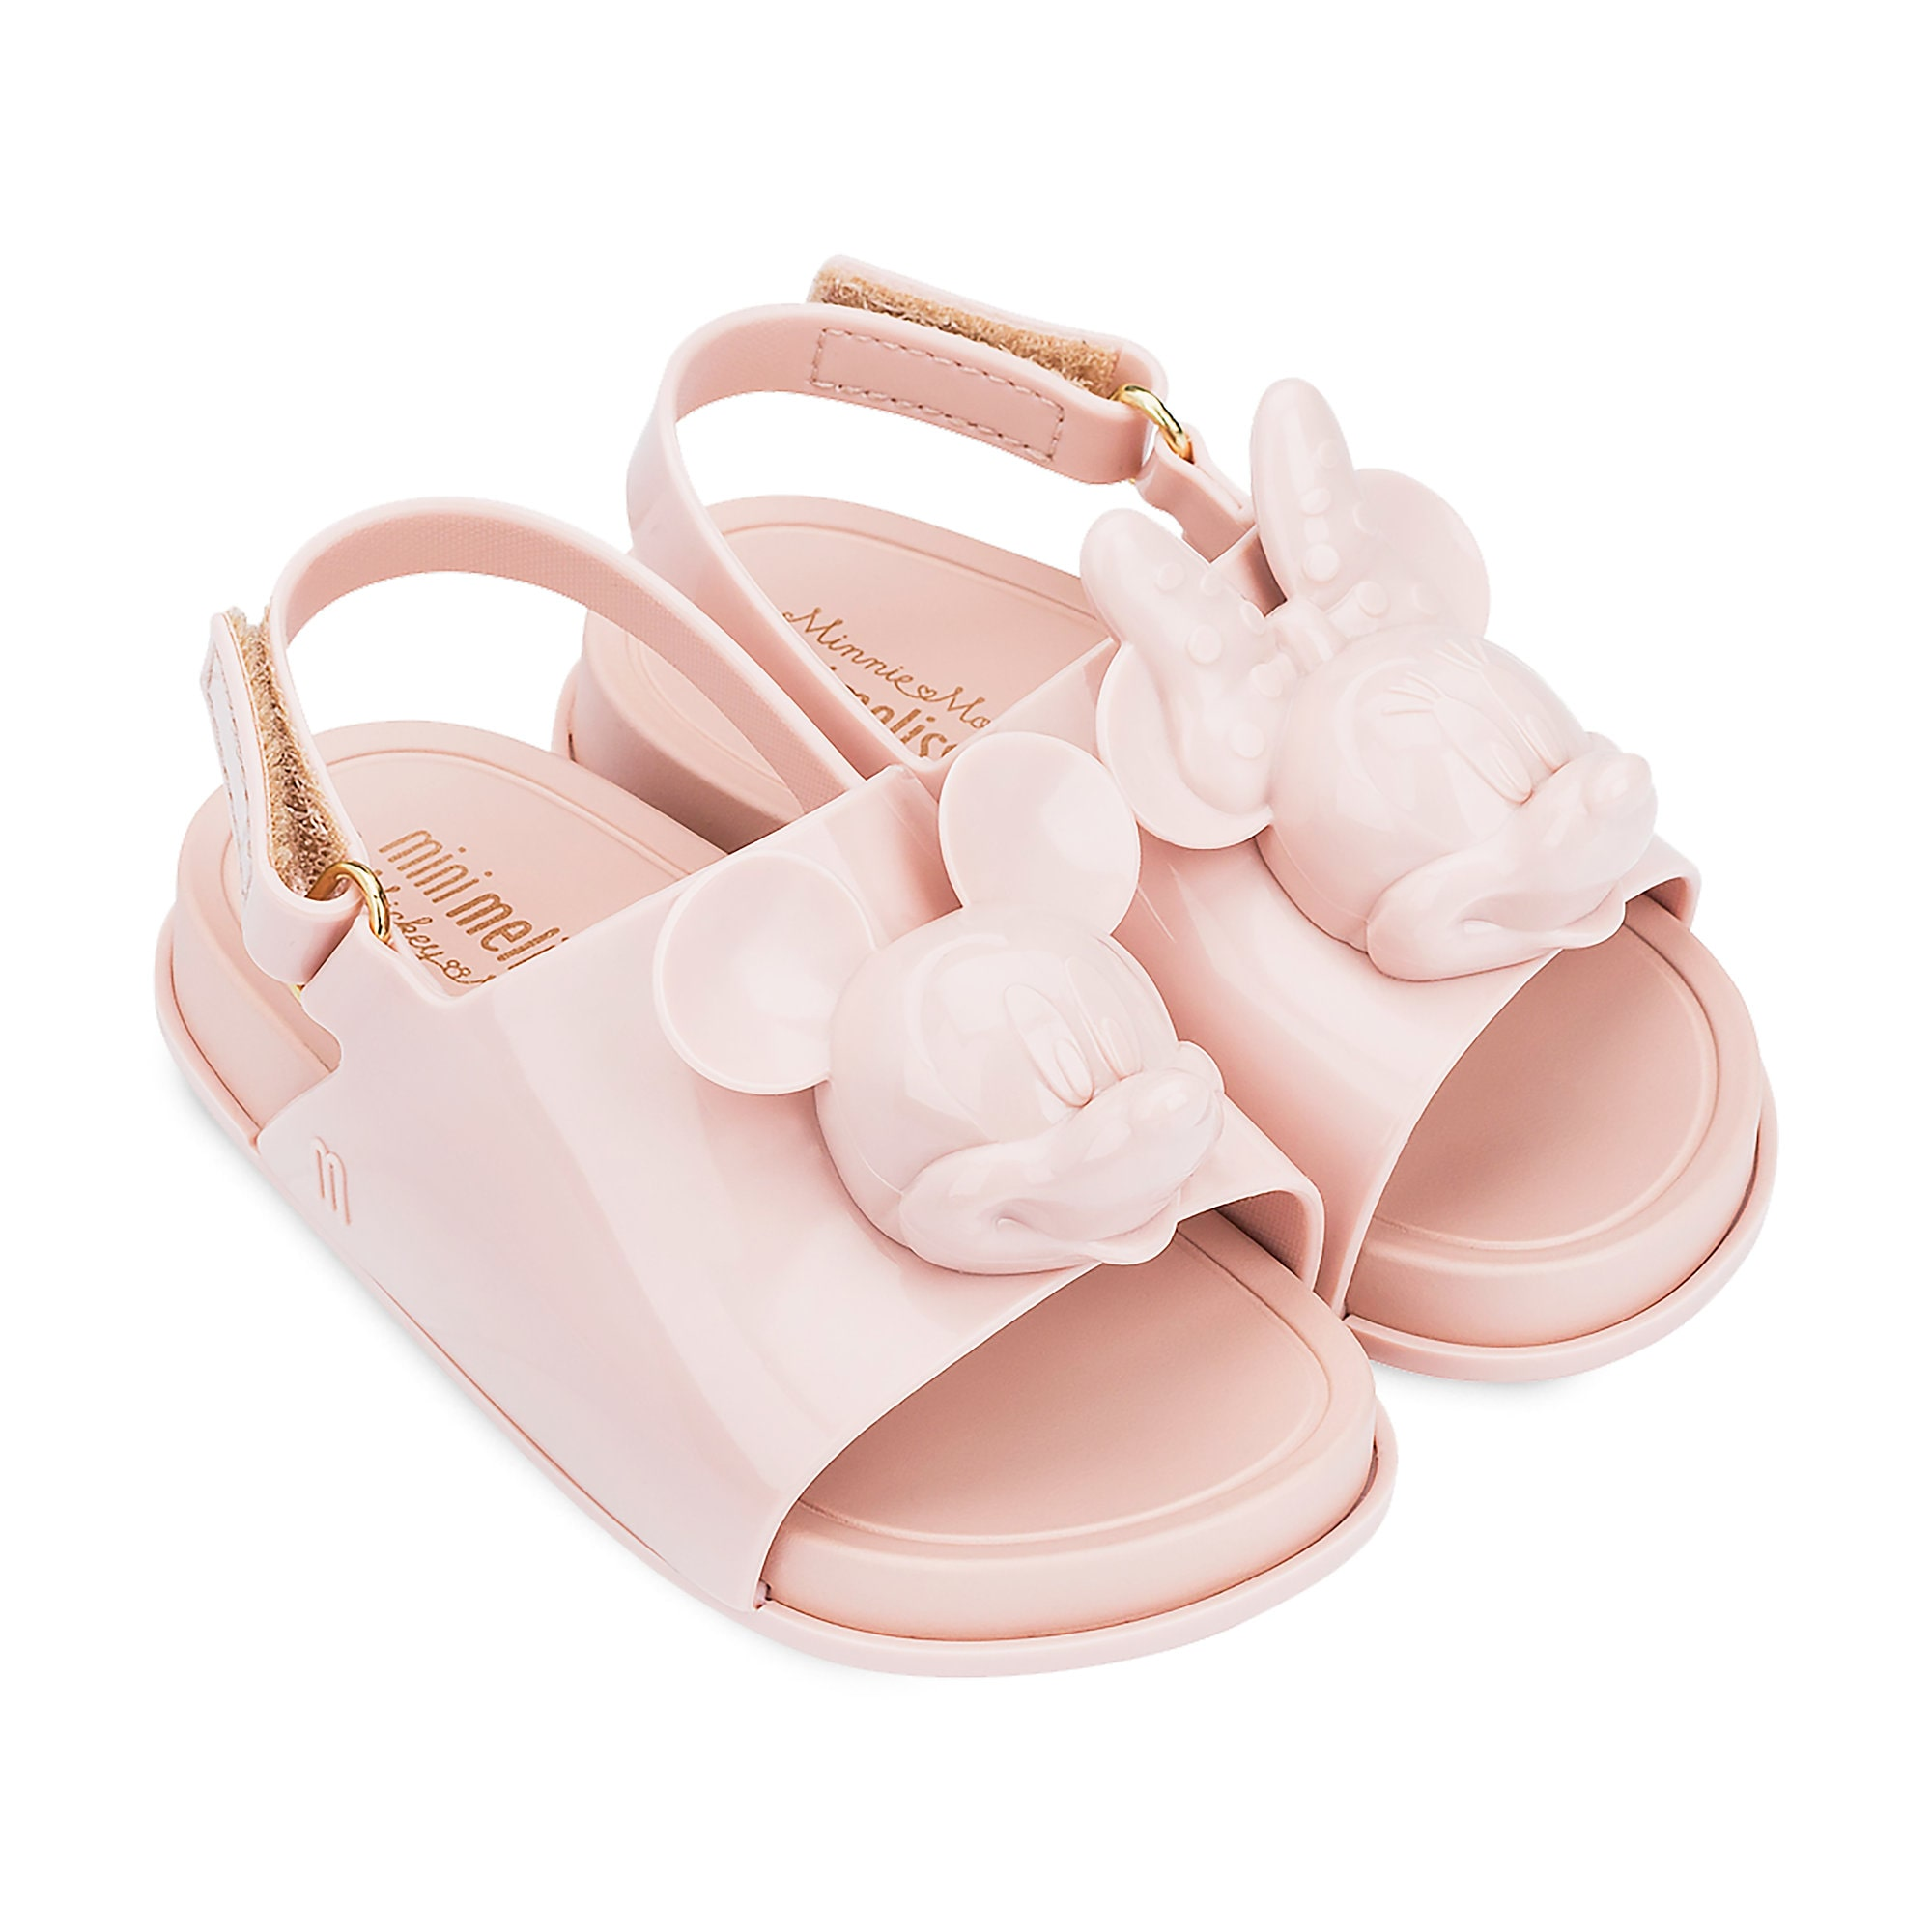 Mickey and Minnie Mouse Slide Sandals for Toddlers by Melissa